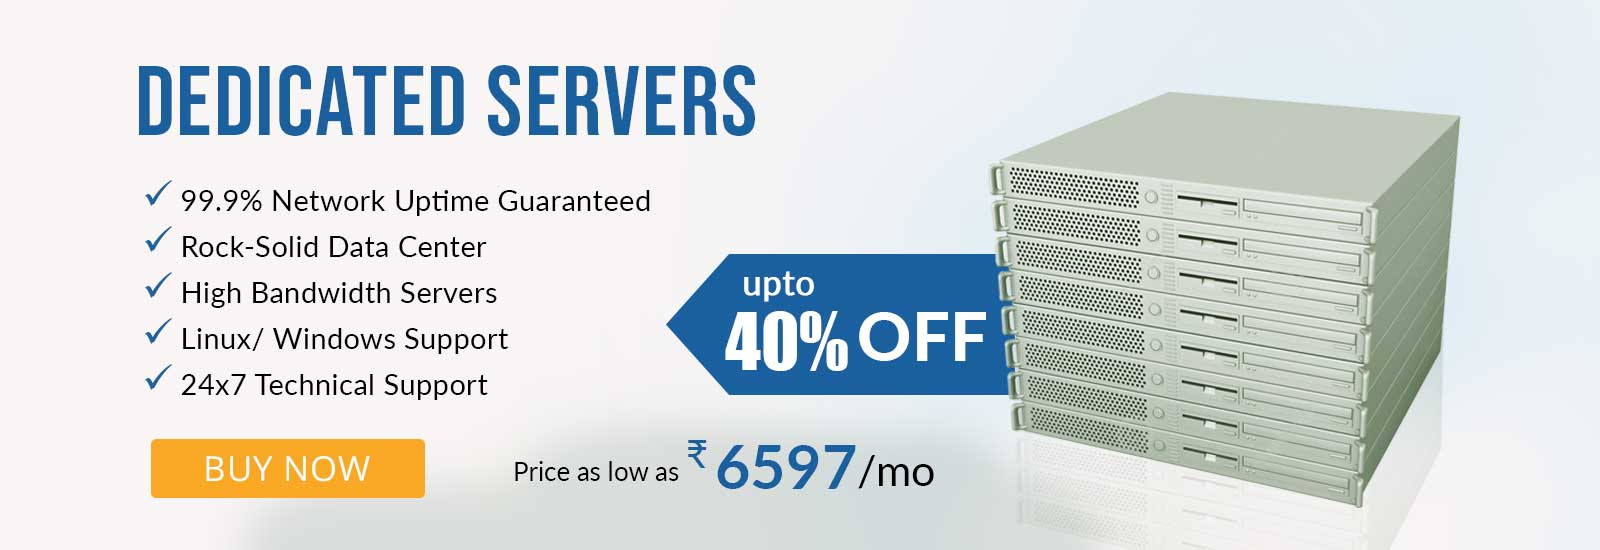 Best dedicated service in India